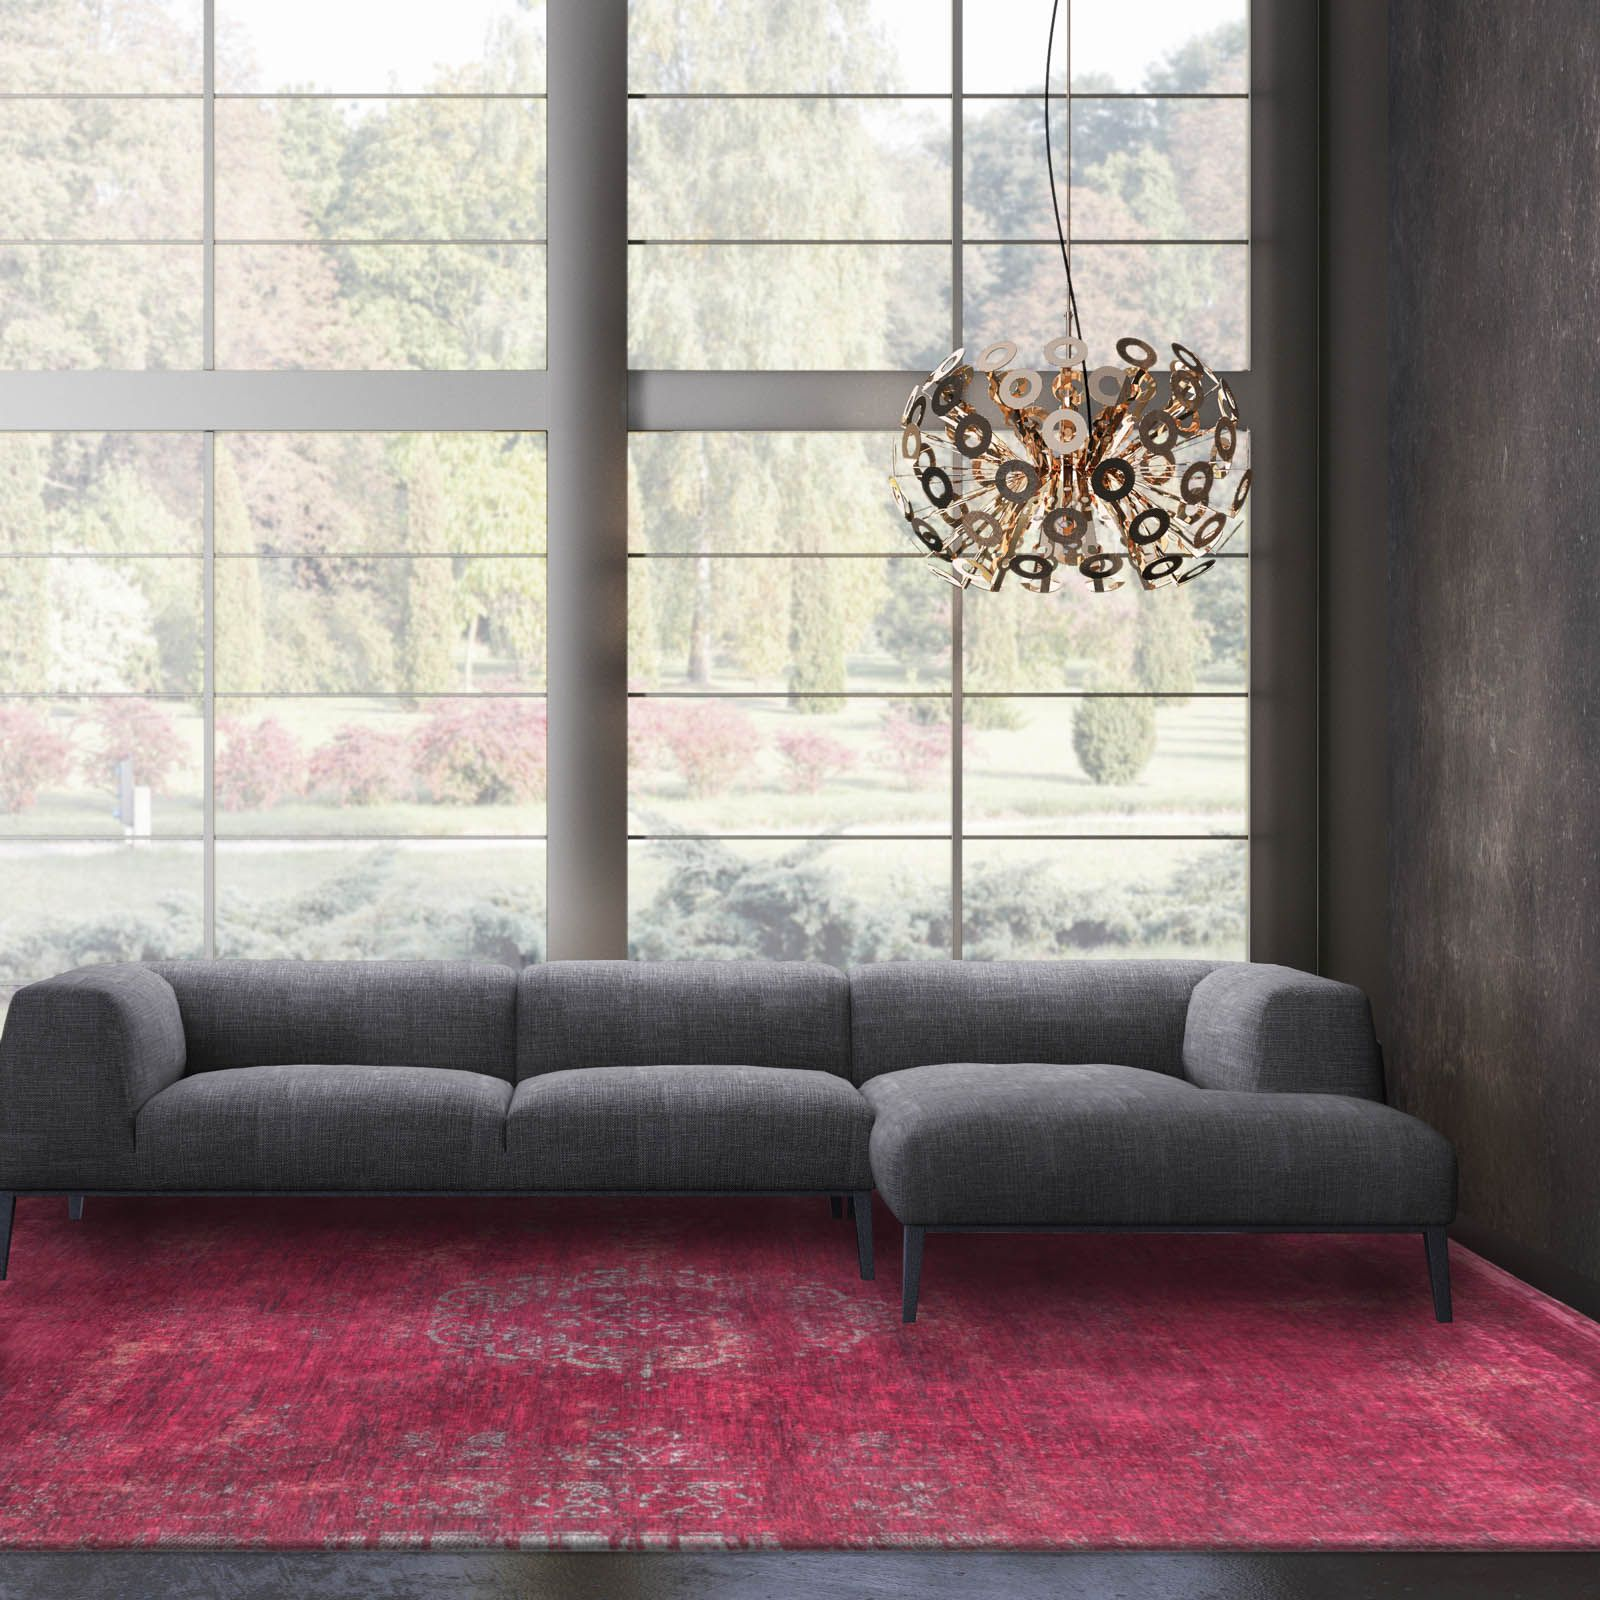 Louis De Poortere Fading World Rugs 8260 Scarlet60x90cm 3 0 X2 0 Art Pendant Cheerhuzz Rugs Traditional Rugs Indian Rugs